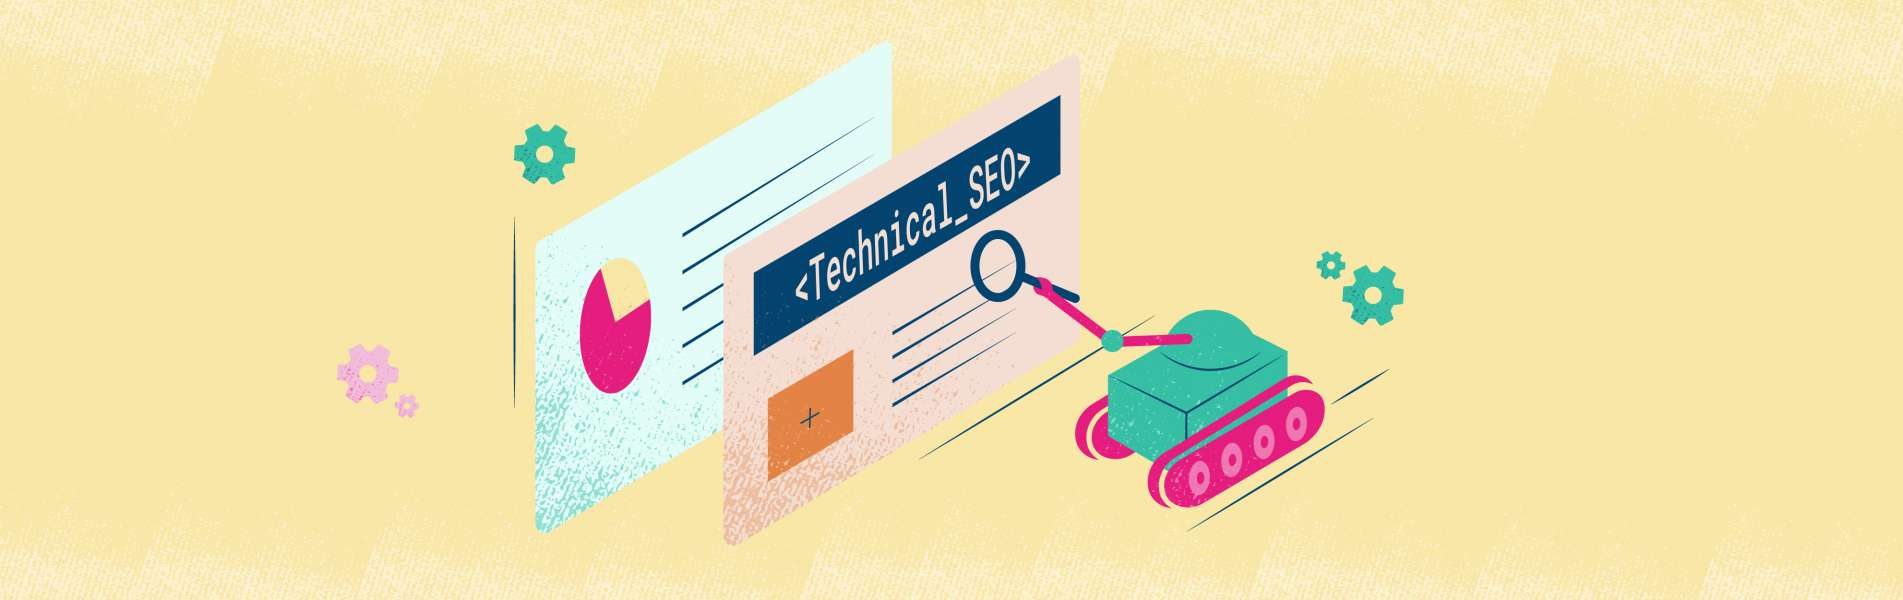 Technical SEO for eCommerce Sites